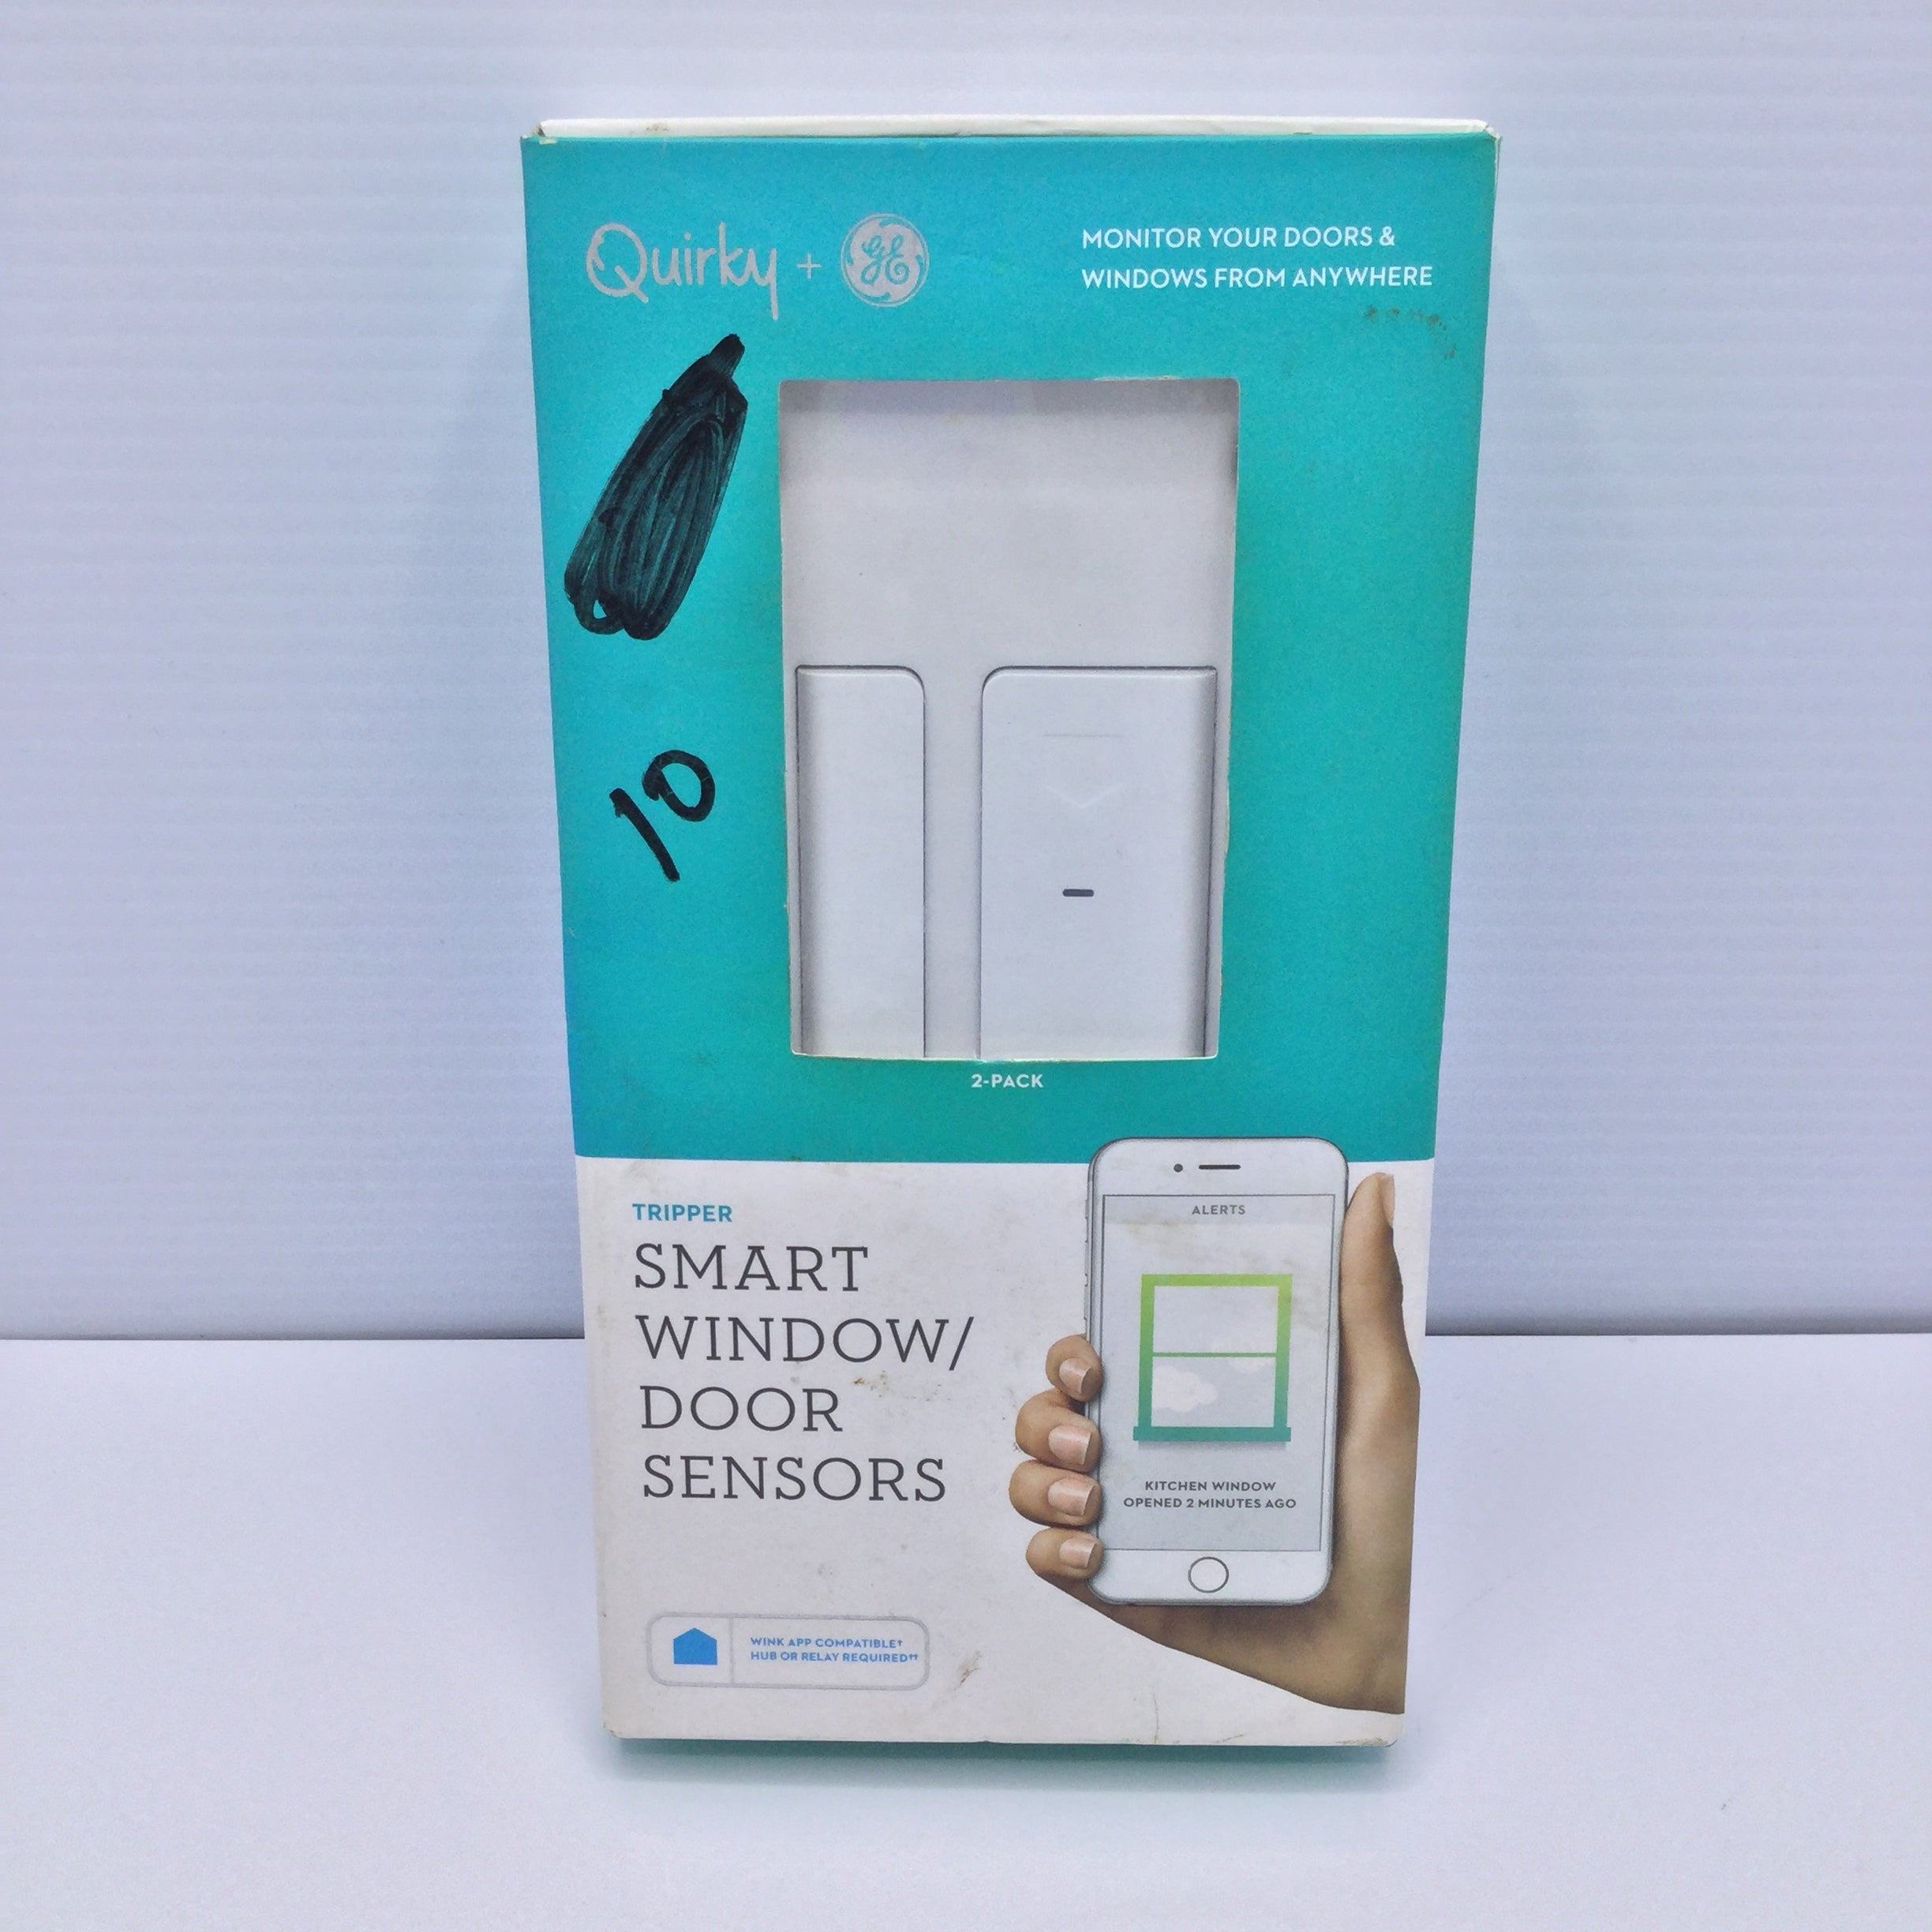 Tripper Smart Window/Door Sensors